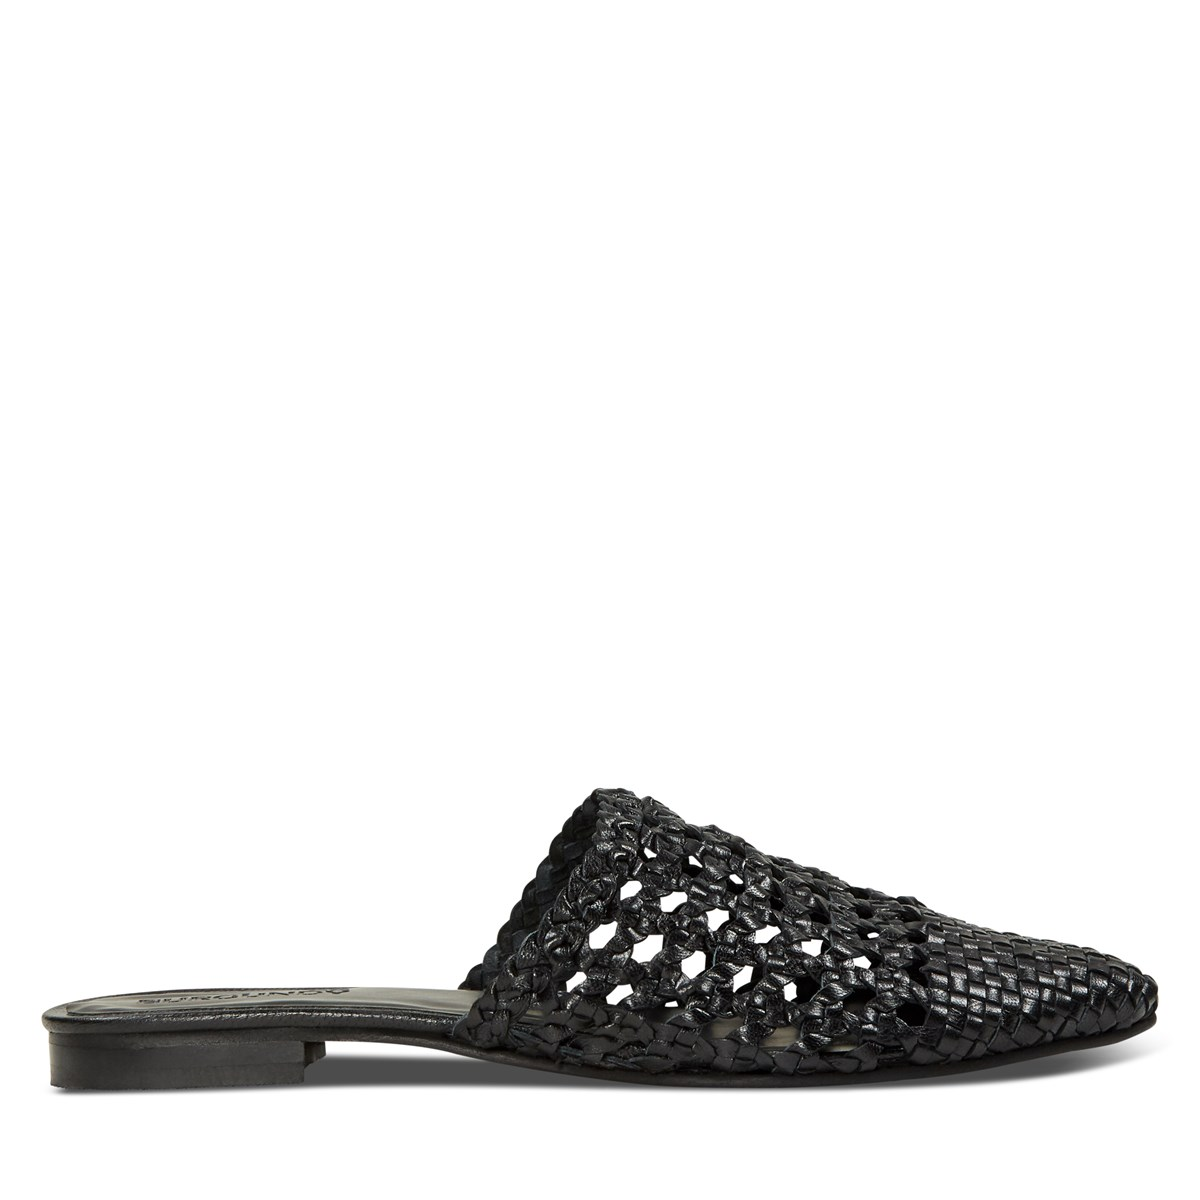 Women's Ines Mule in Black